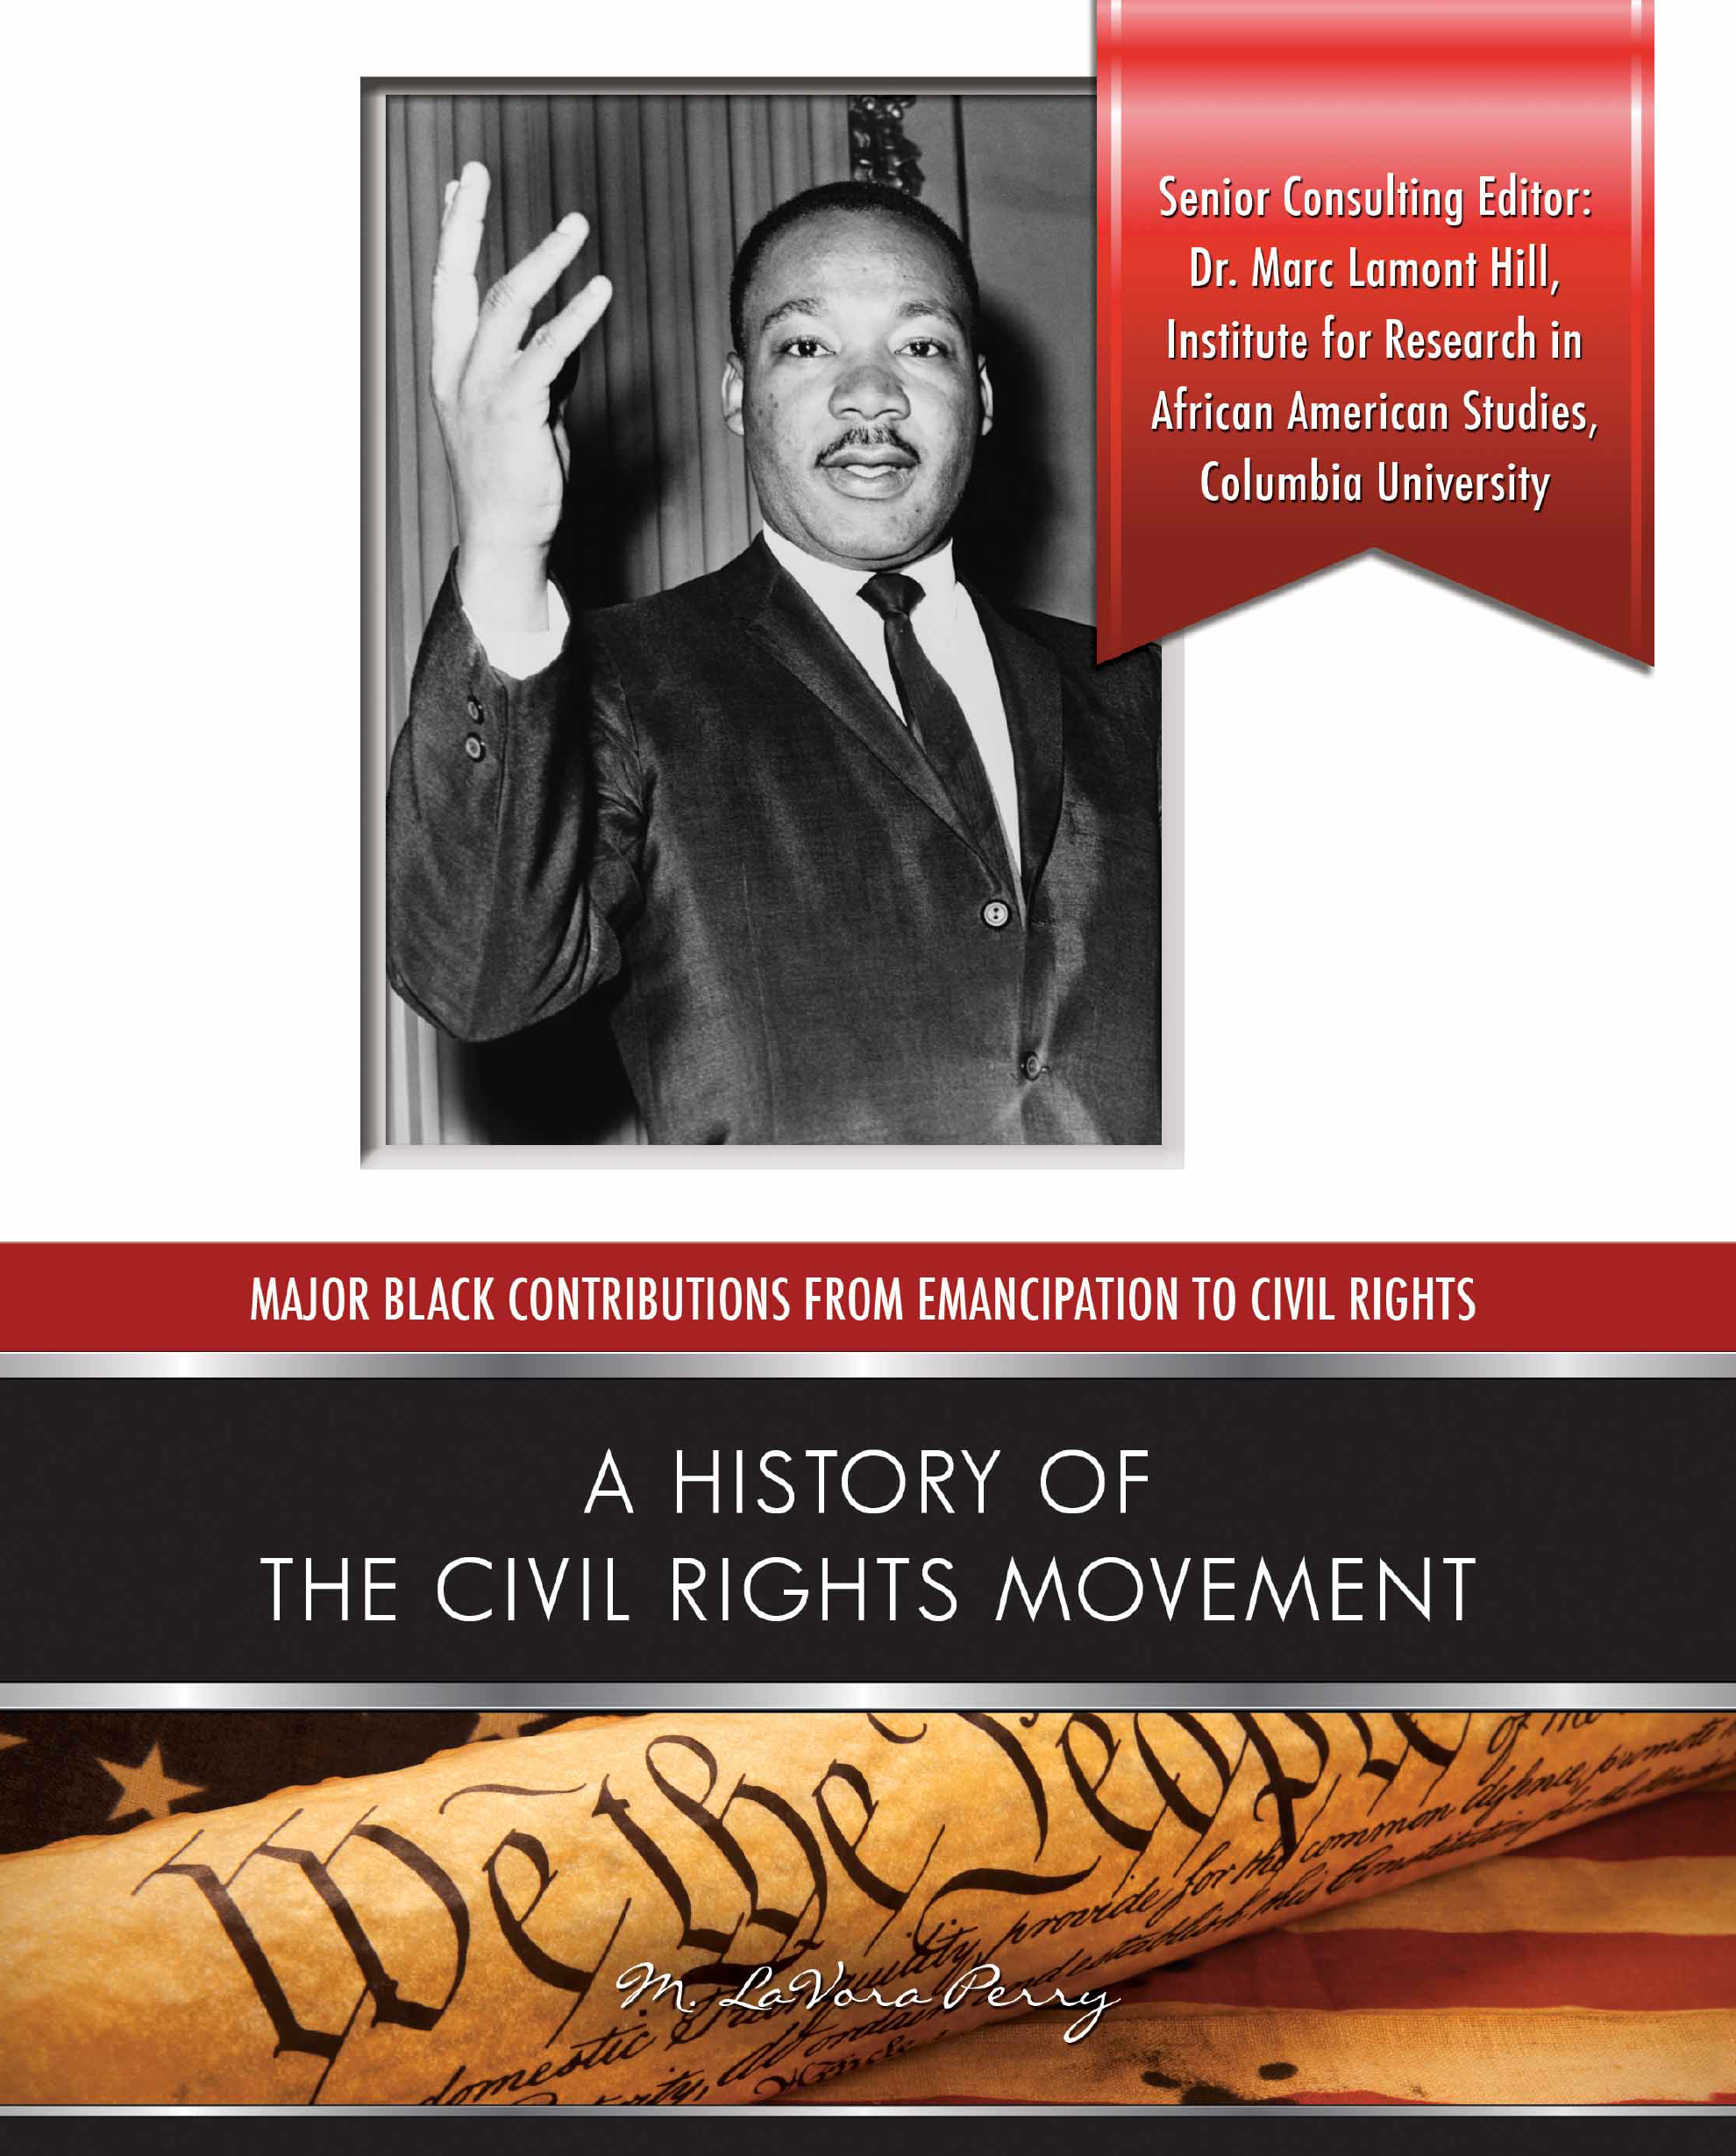 an analysis of the civil rights movement and the treatment of african americans in the twentieth cen